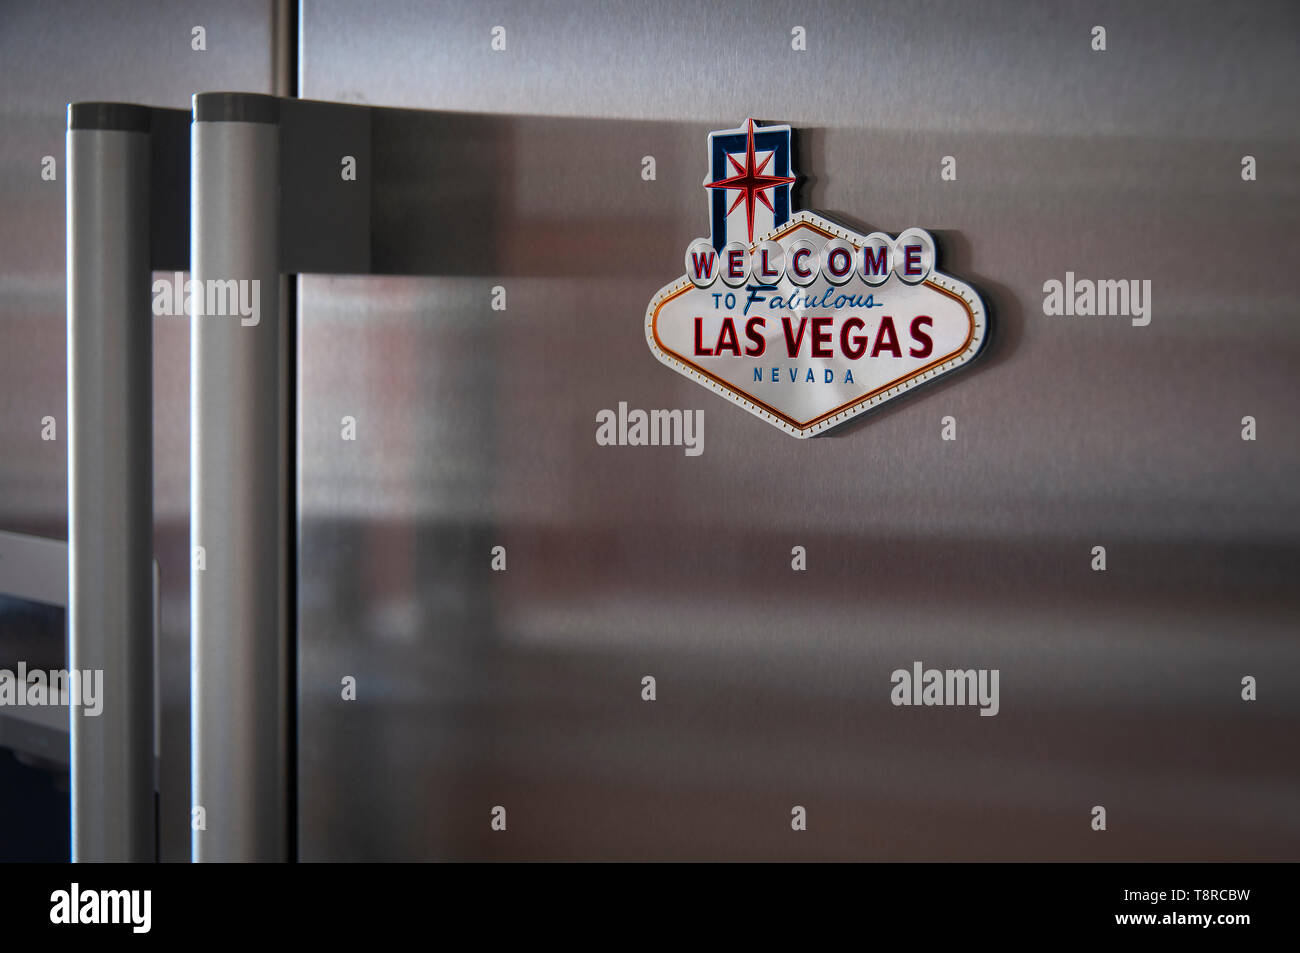 Las Vegas Fridge Magnet attached to a modern stainless steel fridge - Stock Image